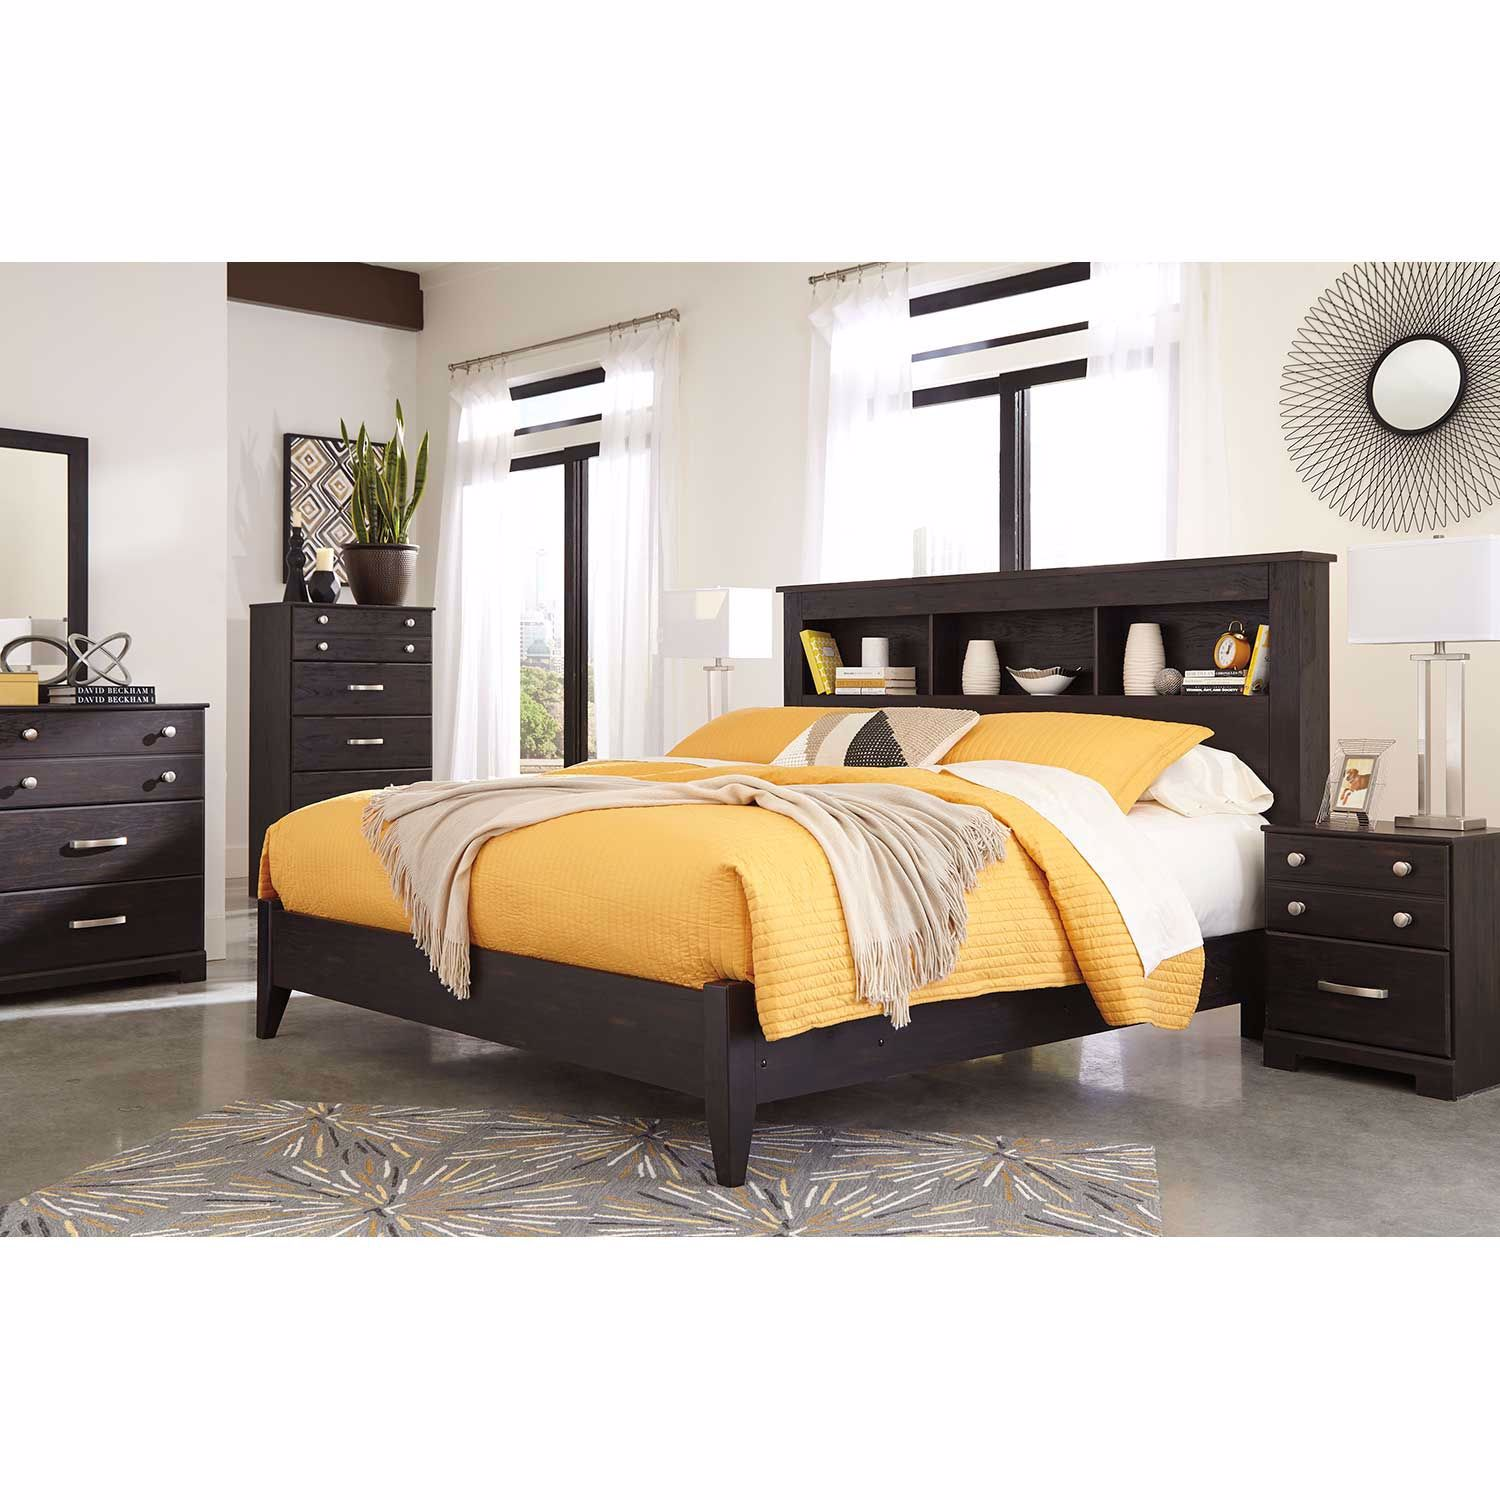 Picture of Reylow 2 Drawer Nightstand